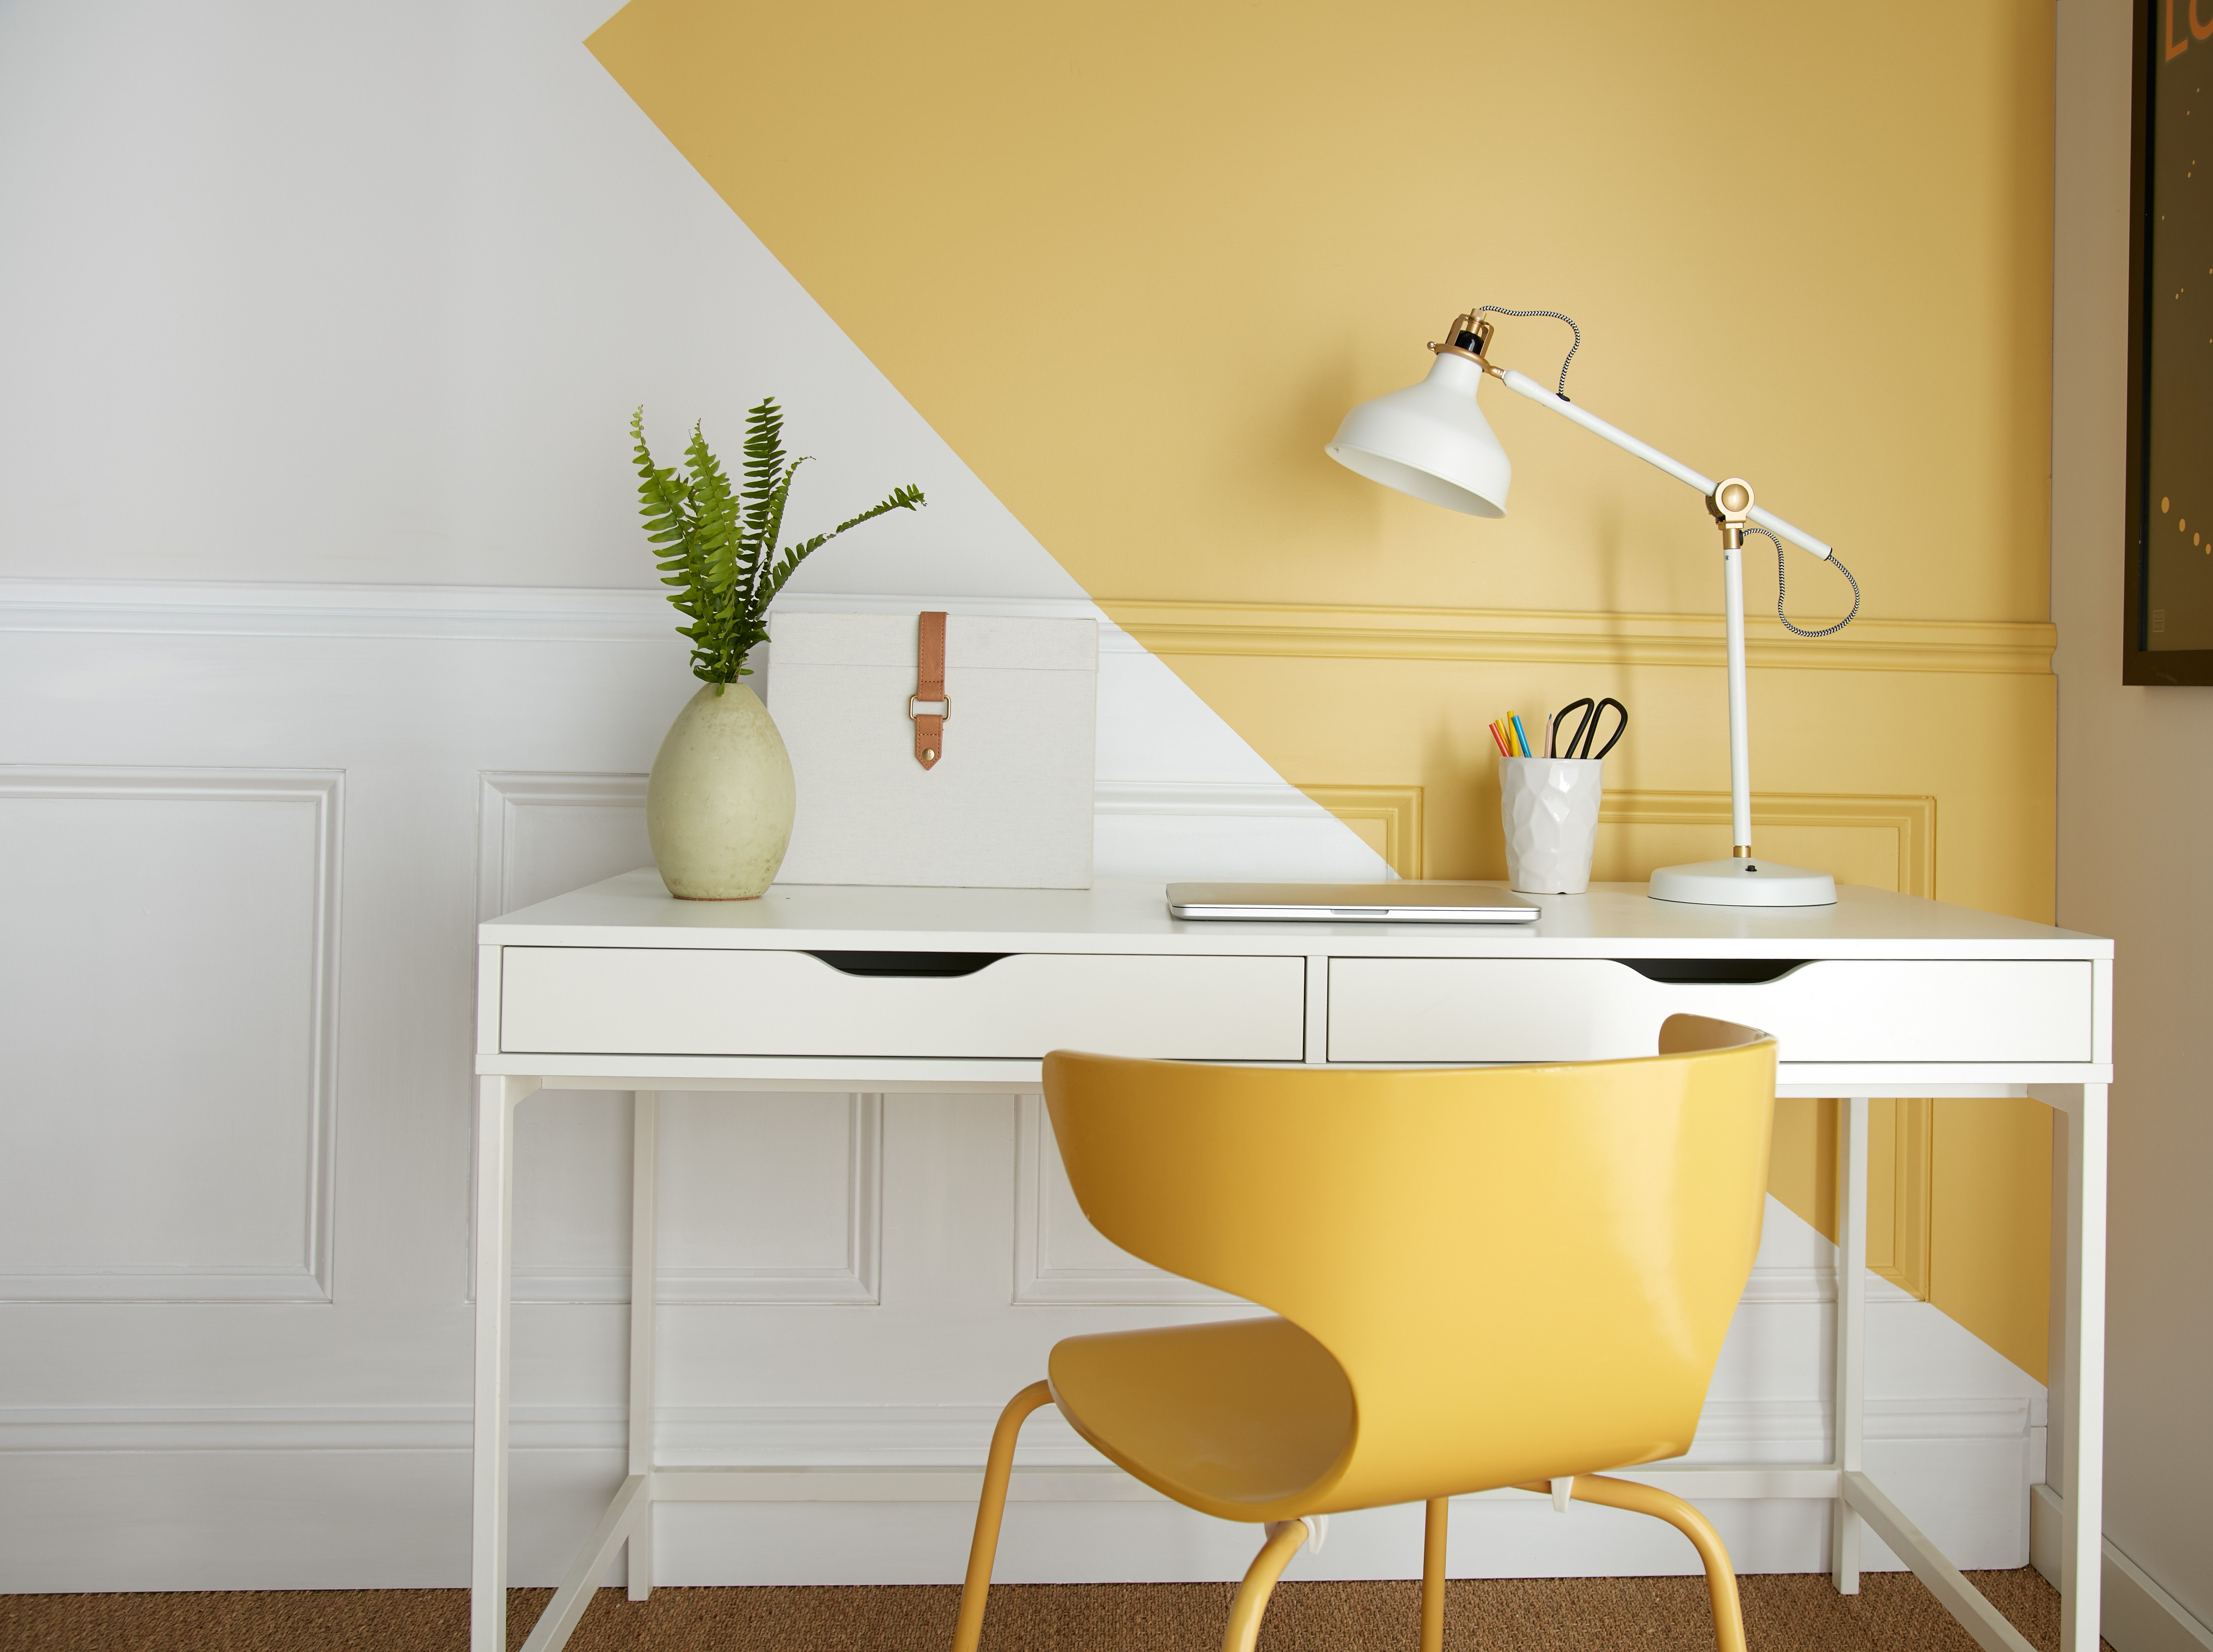 2020 Paint Color Trends According to Behr